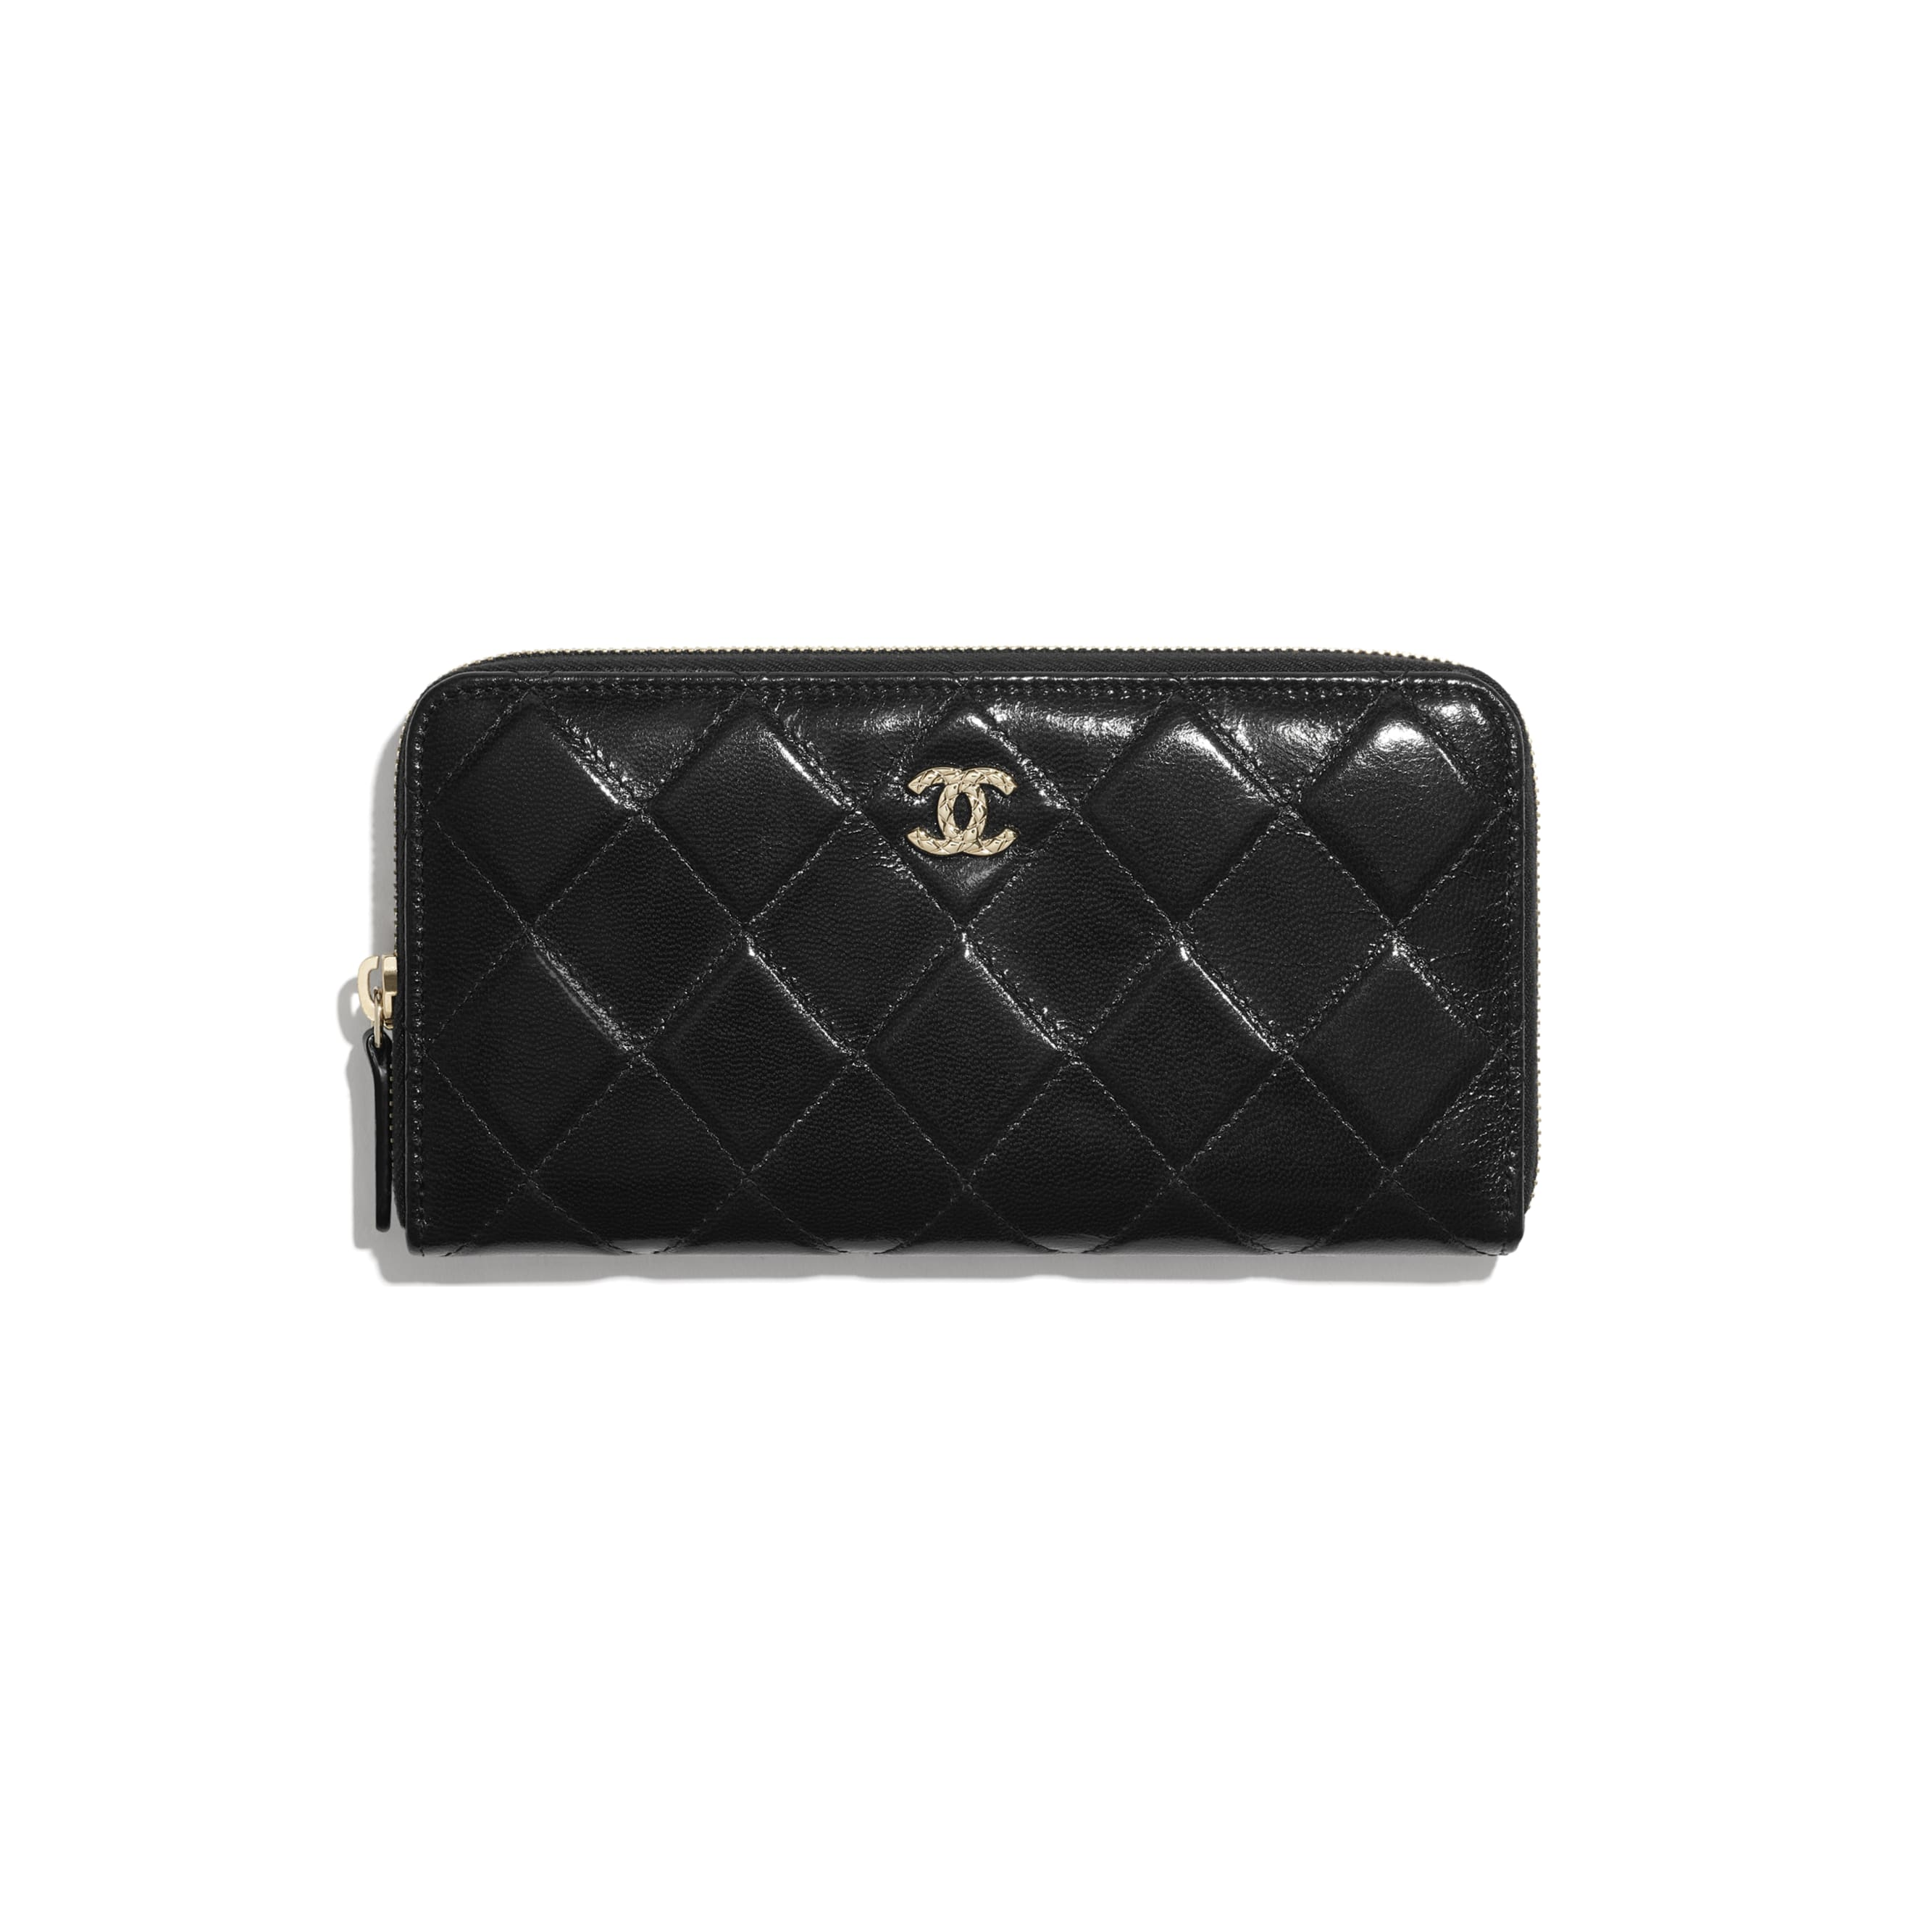 Long Zipped Wallet - Black - Shiny Crumpled Goatskin & Gold-Tone Metal - CHANEL - Default view - see standard sized version